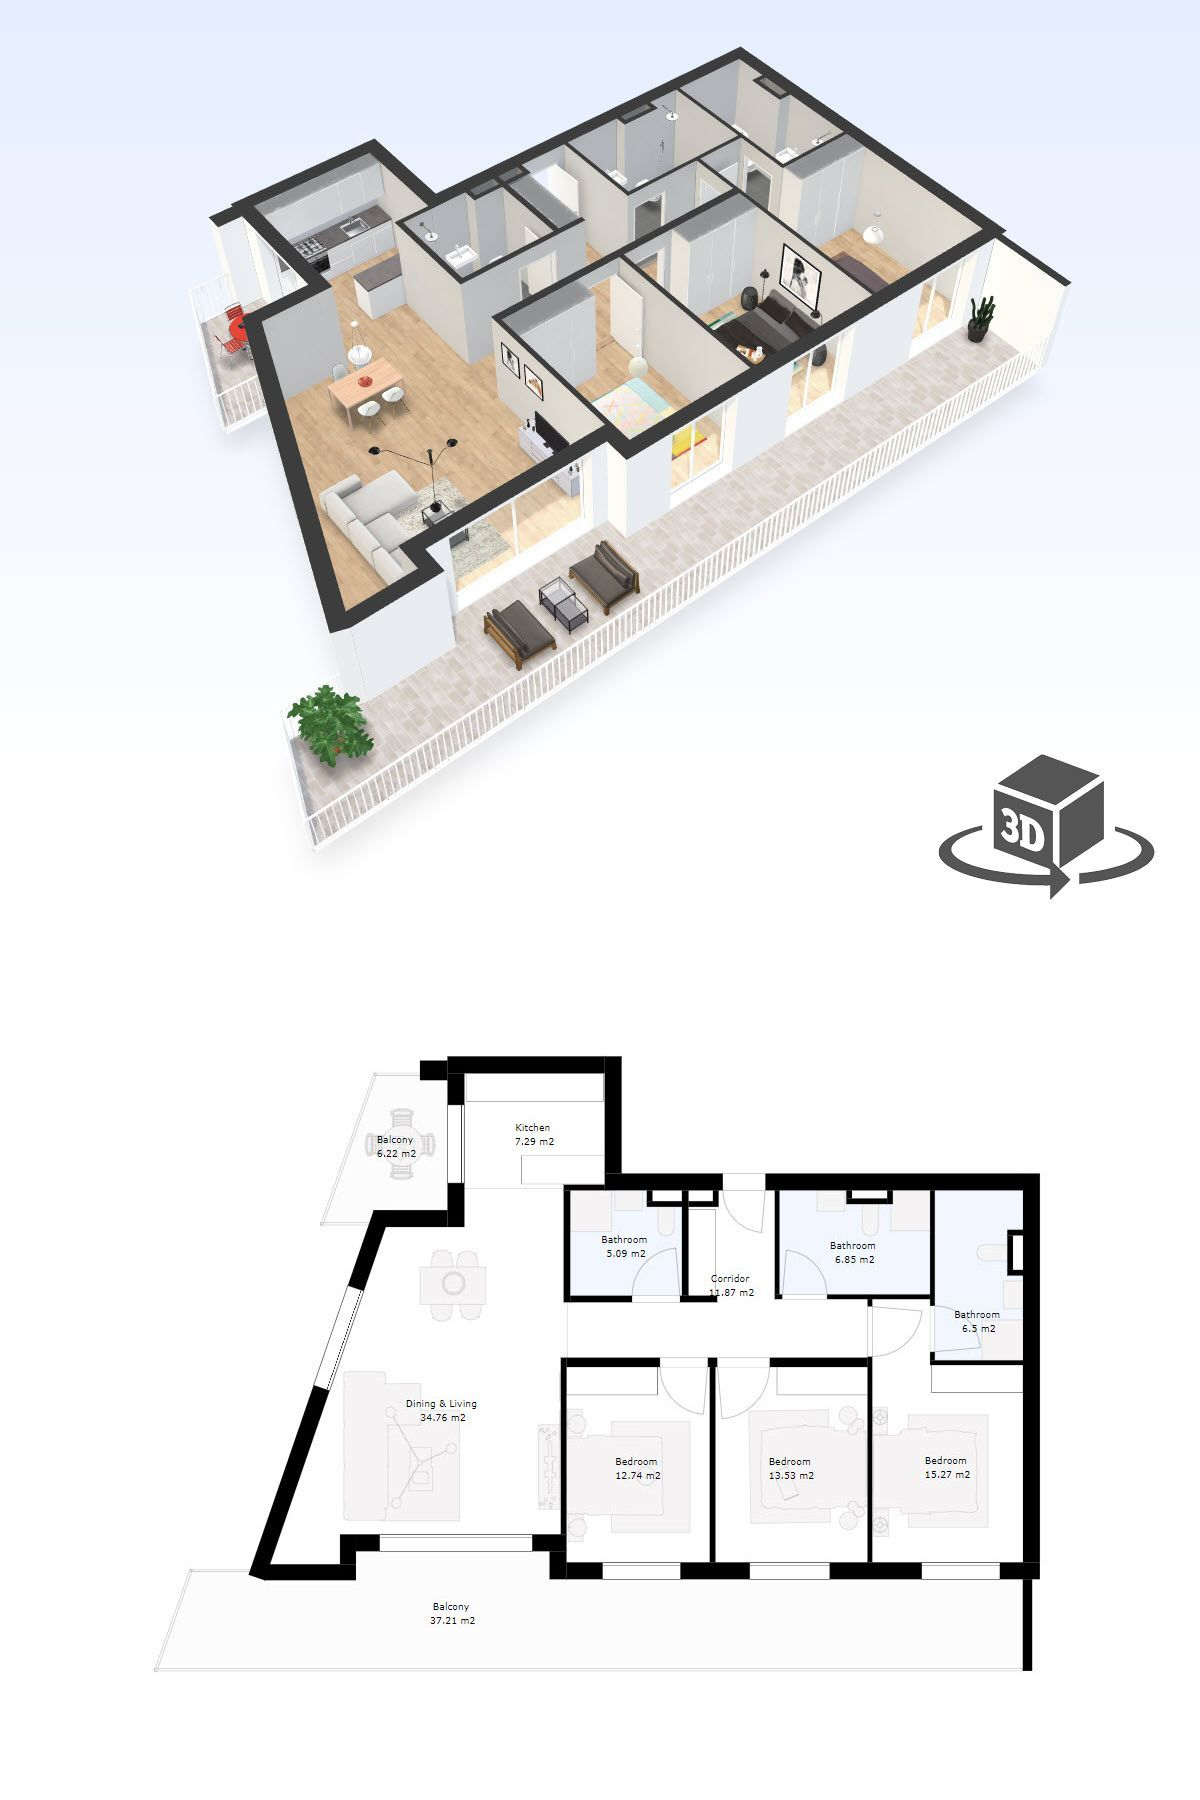 3 Bedroom Apartment Interactive 3d Floor Plan Model Floor Plans Bedroom Floor Plans Bedroom Flooring